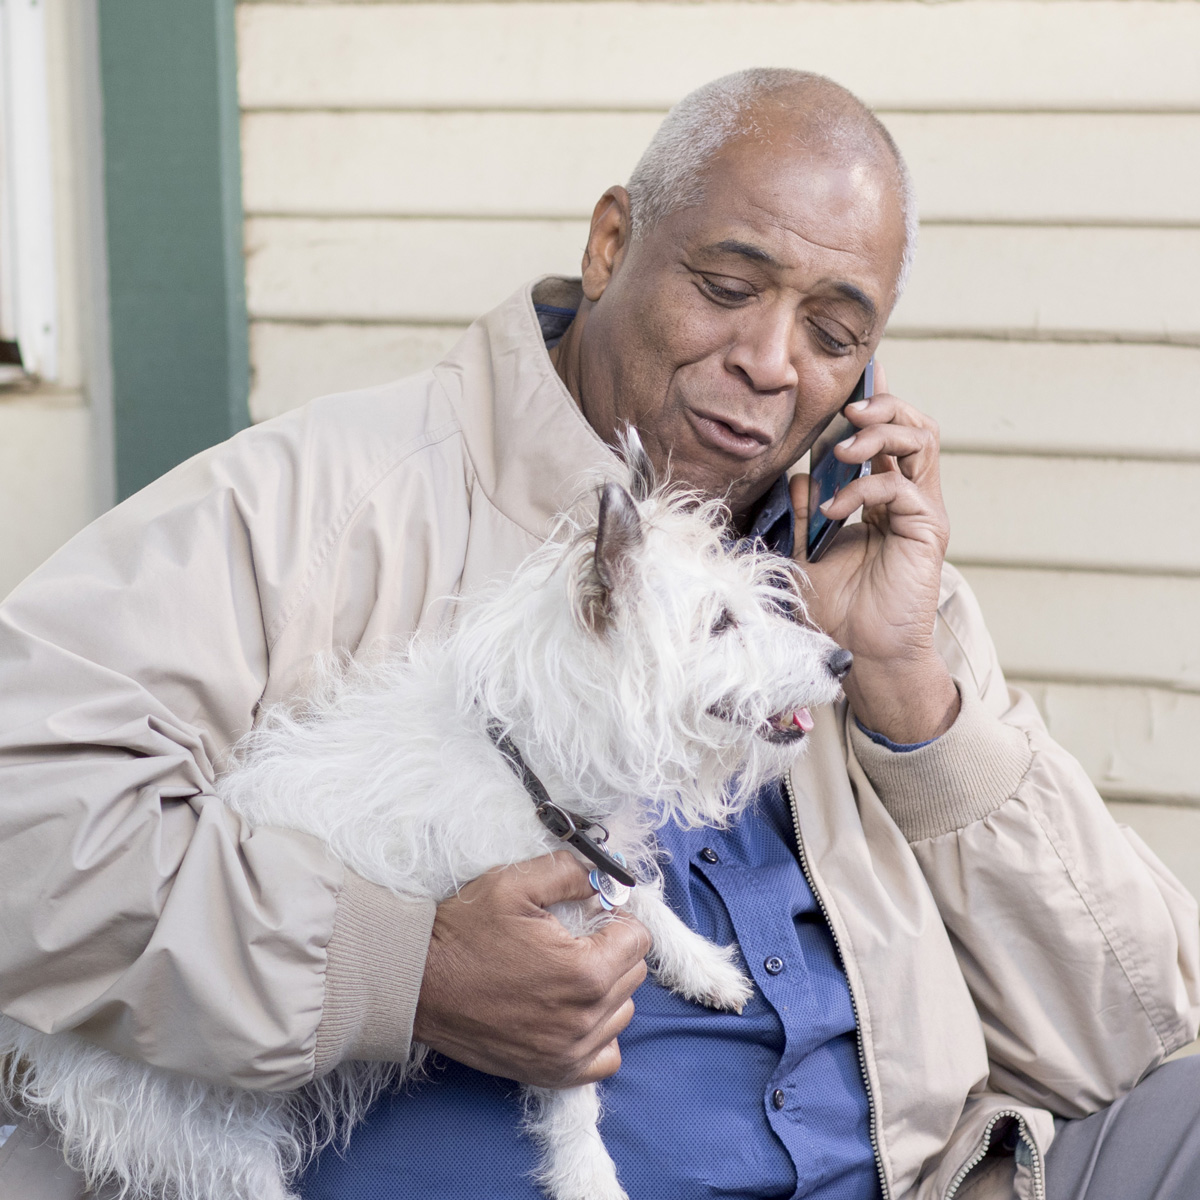 Man on a mobile phone holding a dog